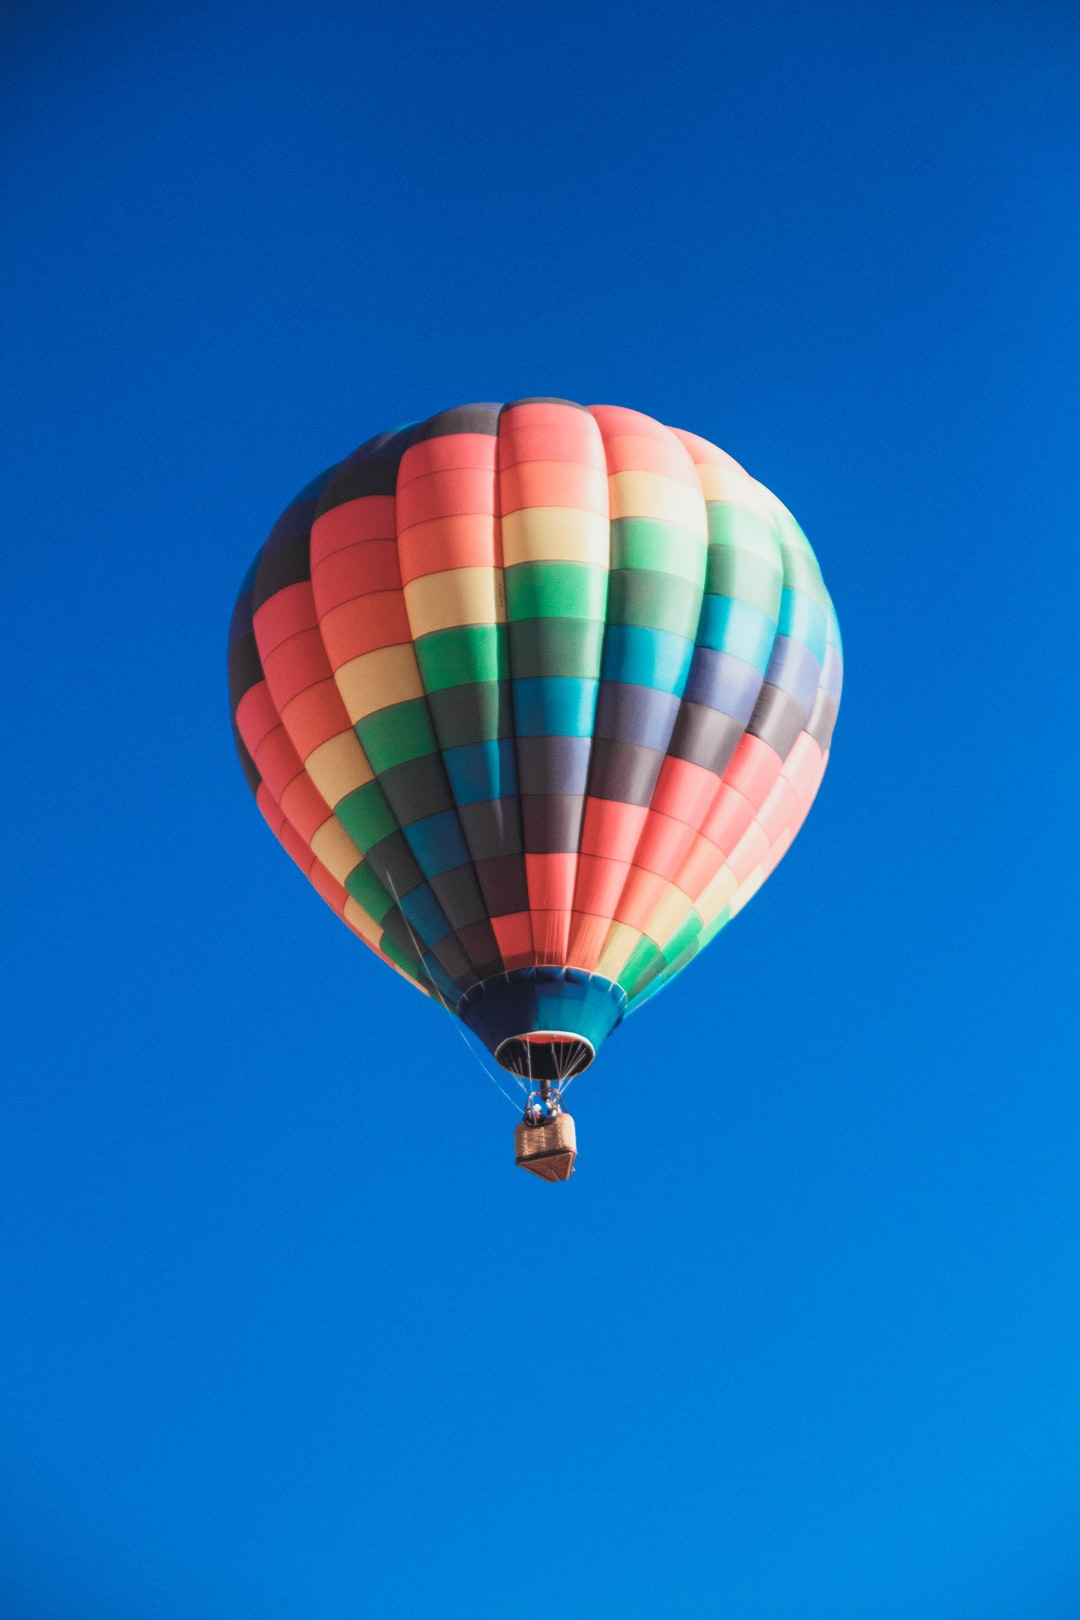 My girlfriend pretty much threw me into my car without telling me where we were going, it was the early morning and I had no idea where we were. After an hour and a half of driving, much to my surprise, I was greeted by fifty different hot air balloons. Luckily for me, I had my camera and was able to take a couple shots before they flew away!